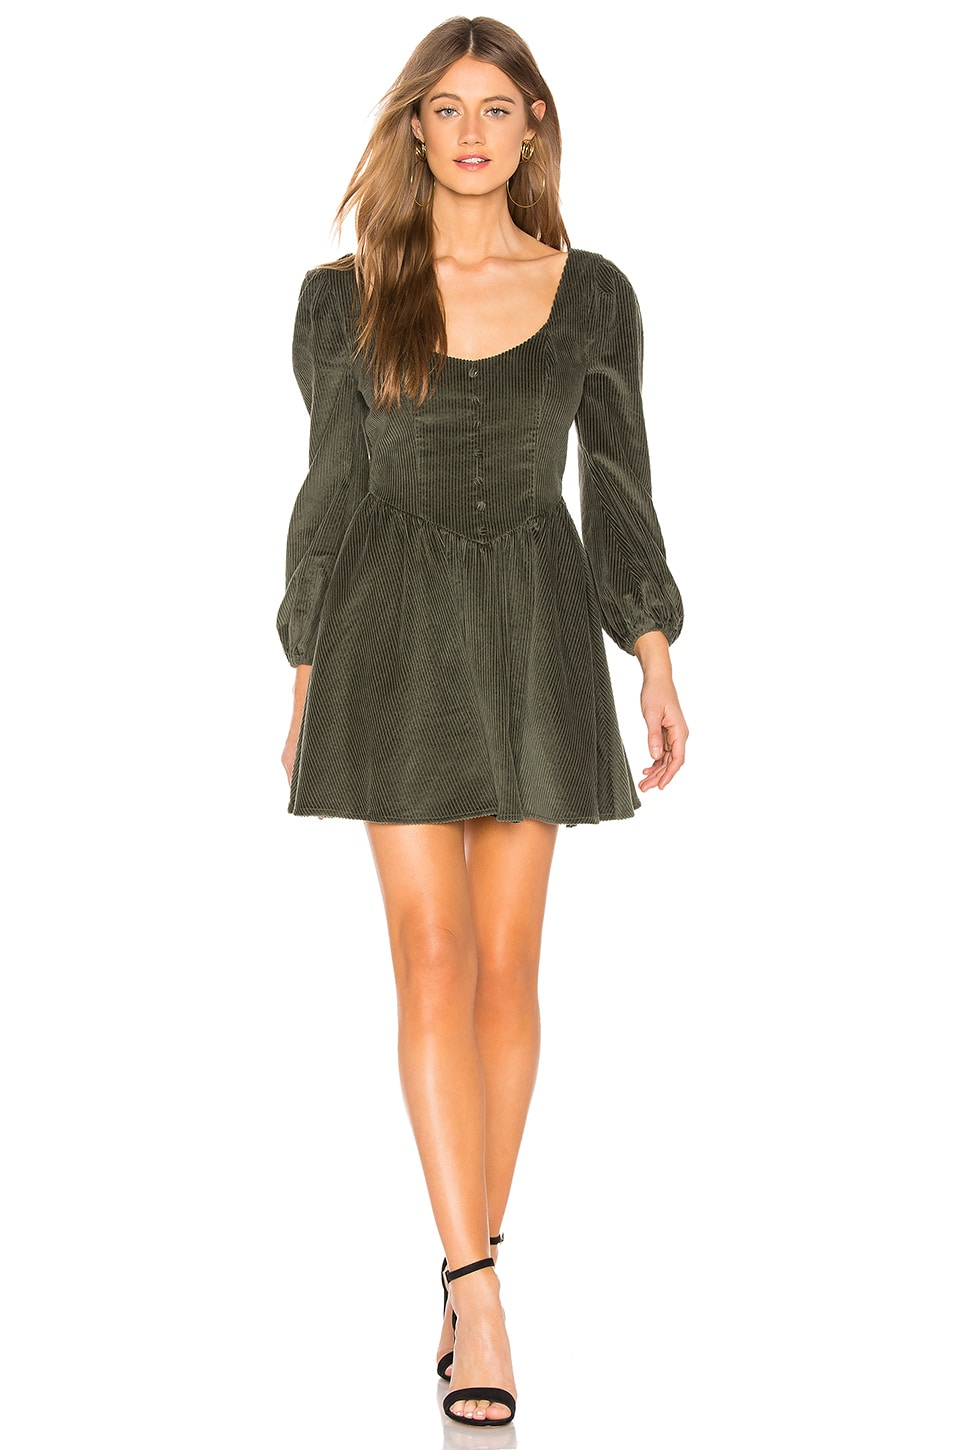 MAJORELLE Alessandra Mini Dress in Olive Green